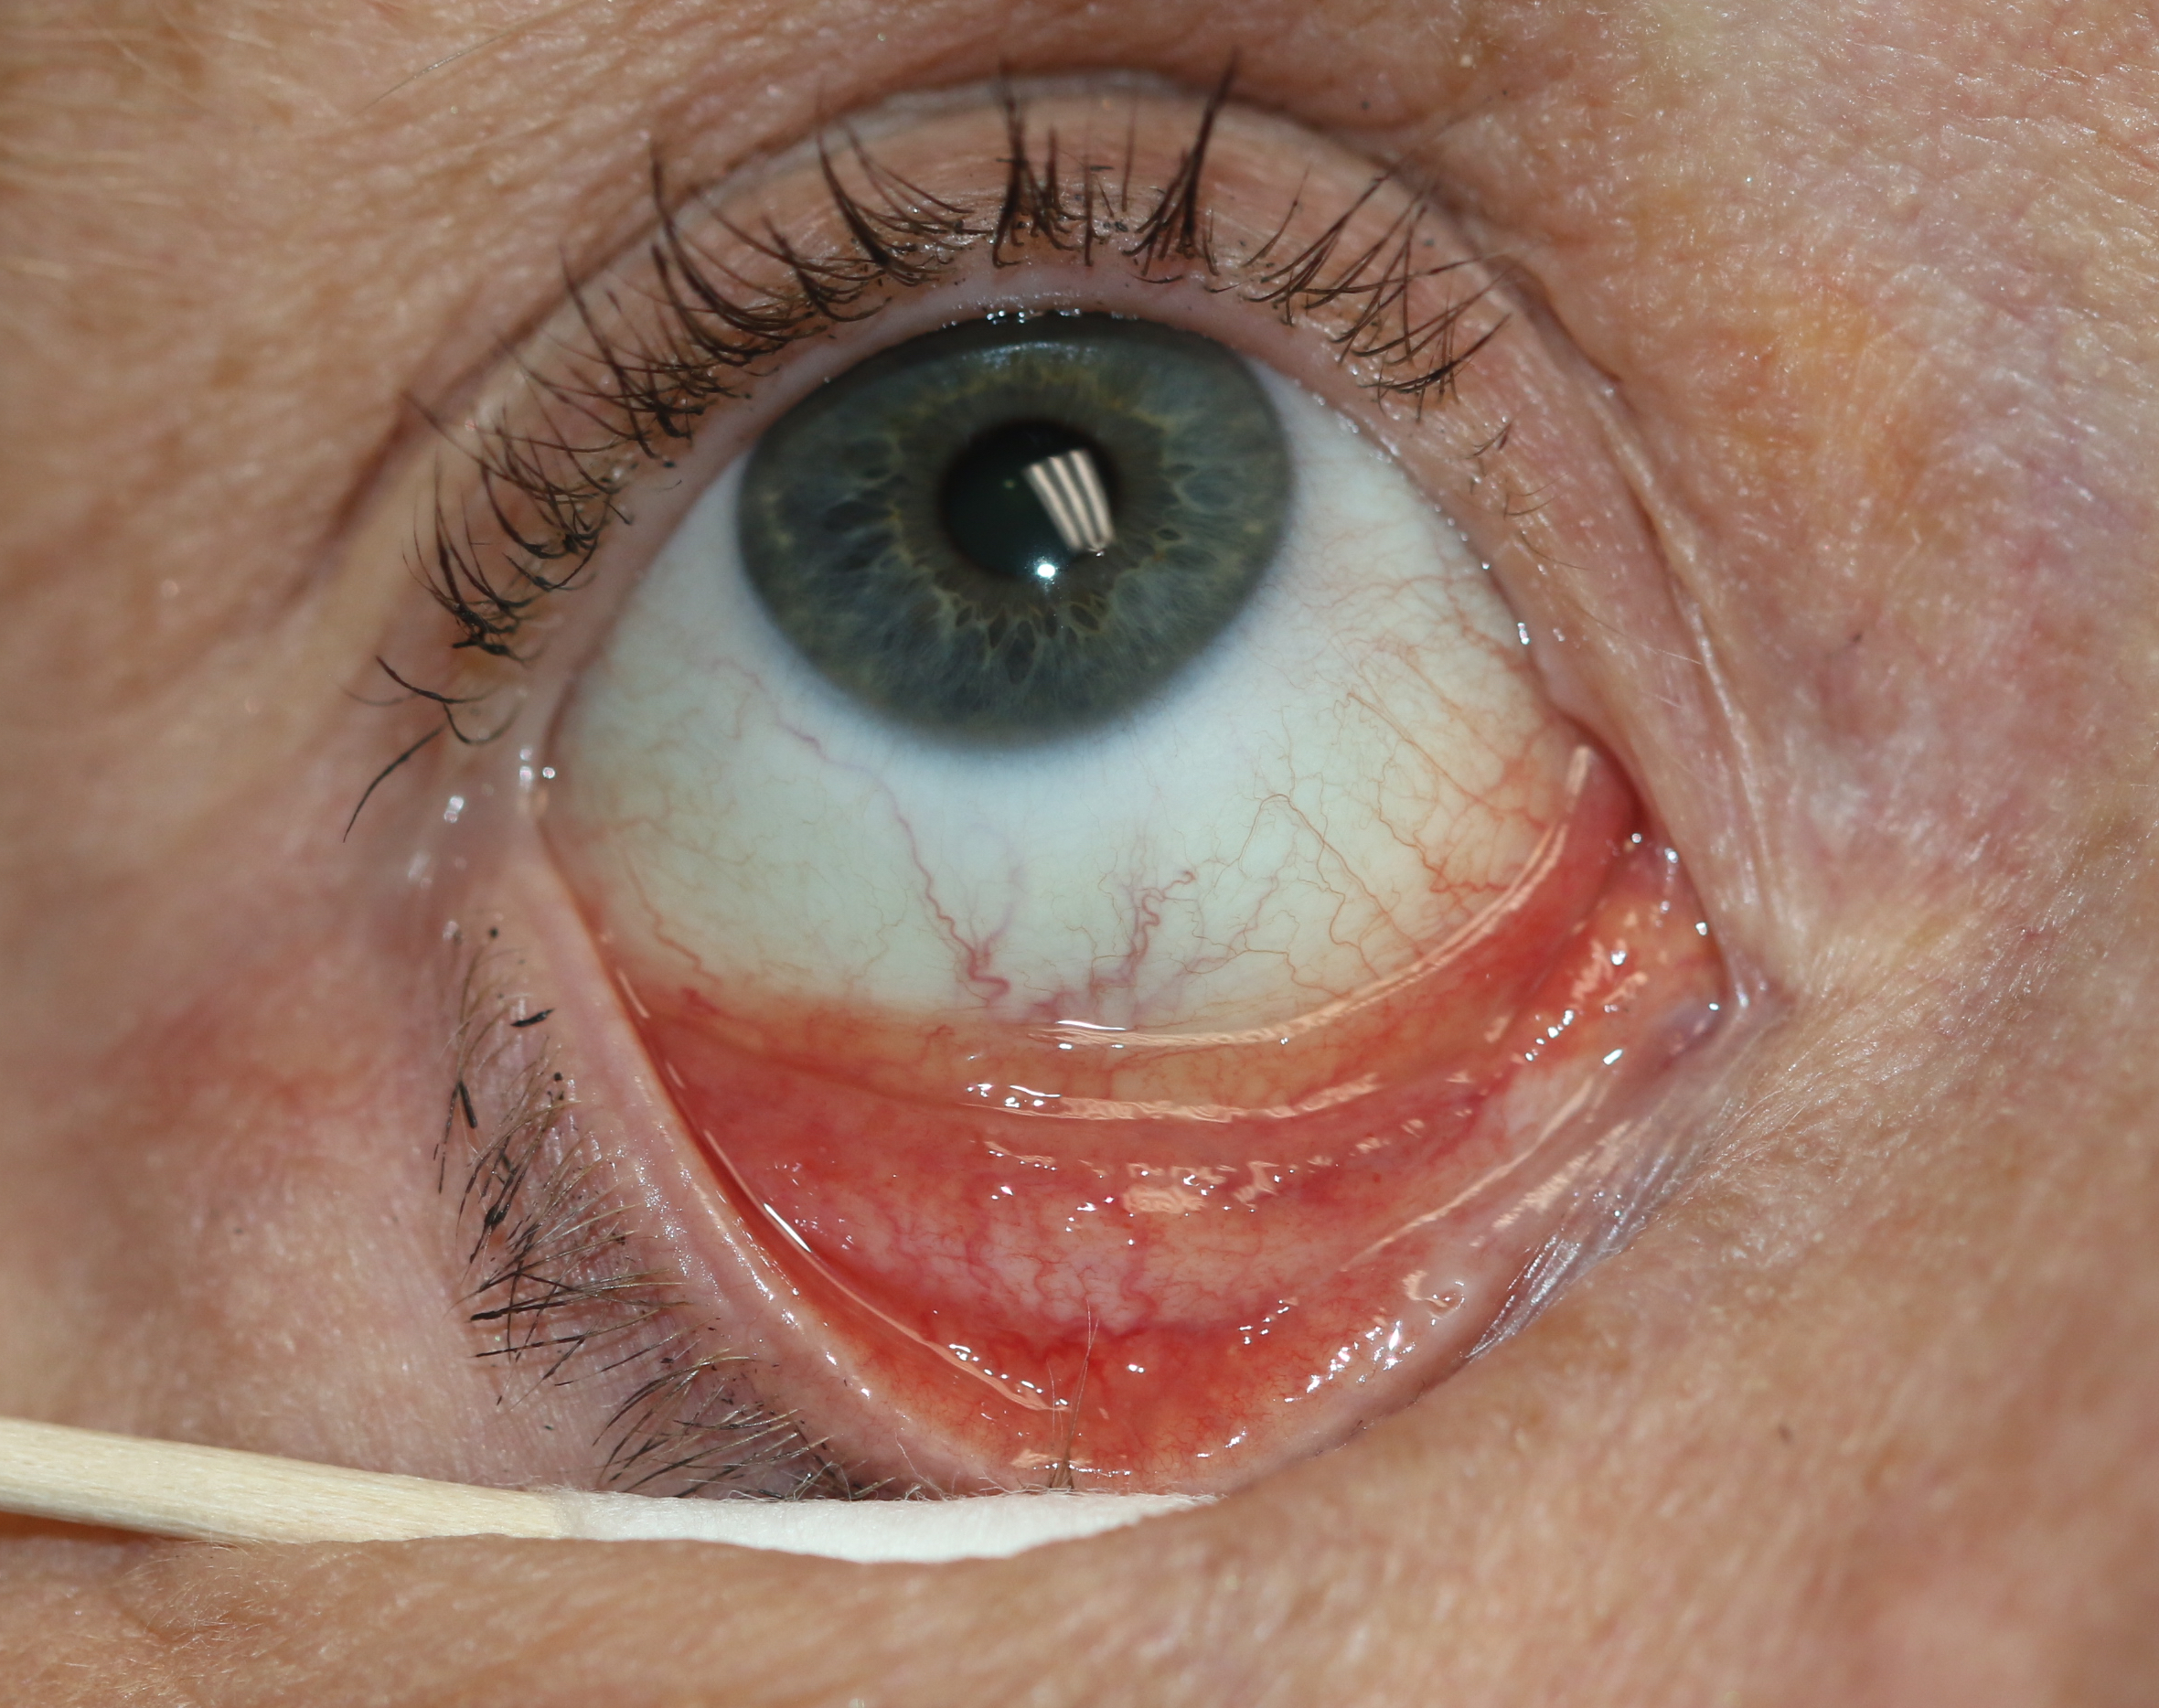 Follicular conjunctivitis may be seen with viral infections like herpes zoster, Epstein-Barr virus infection, infectious mononucleosis), chlamydial infections, and in reaction of topical medications and molluscum contagiosum. Follicular conjunctivitis has been described in patients with the COVID-19 infection (coronavirus infection). The inferior and superior tarsal conjunctiva and the fornices show gray-white elevated swellings which are about 0.5 - 1 mm in diameter and have a velvety appearance